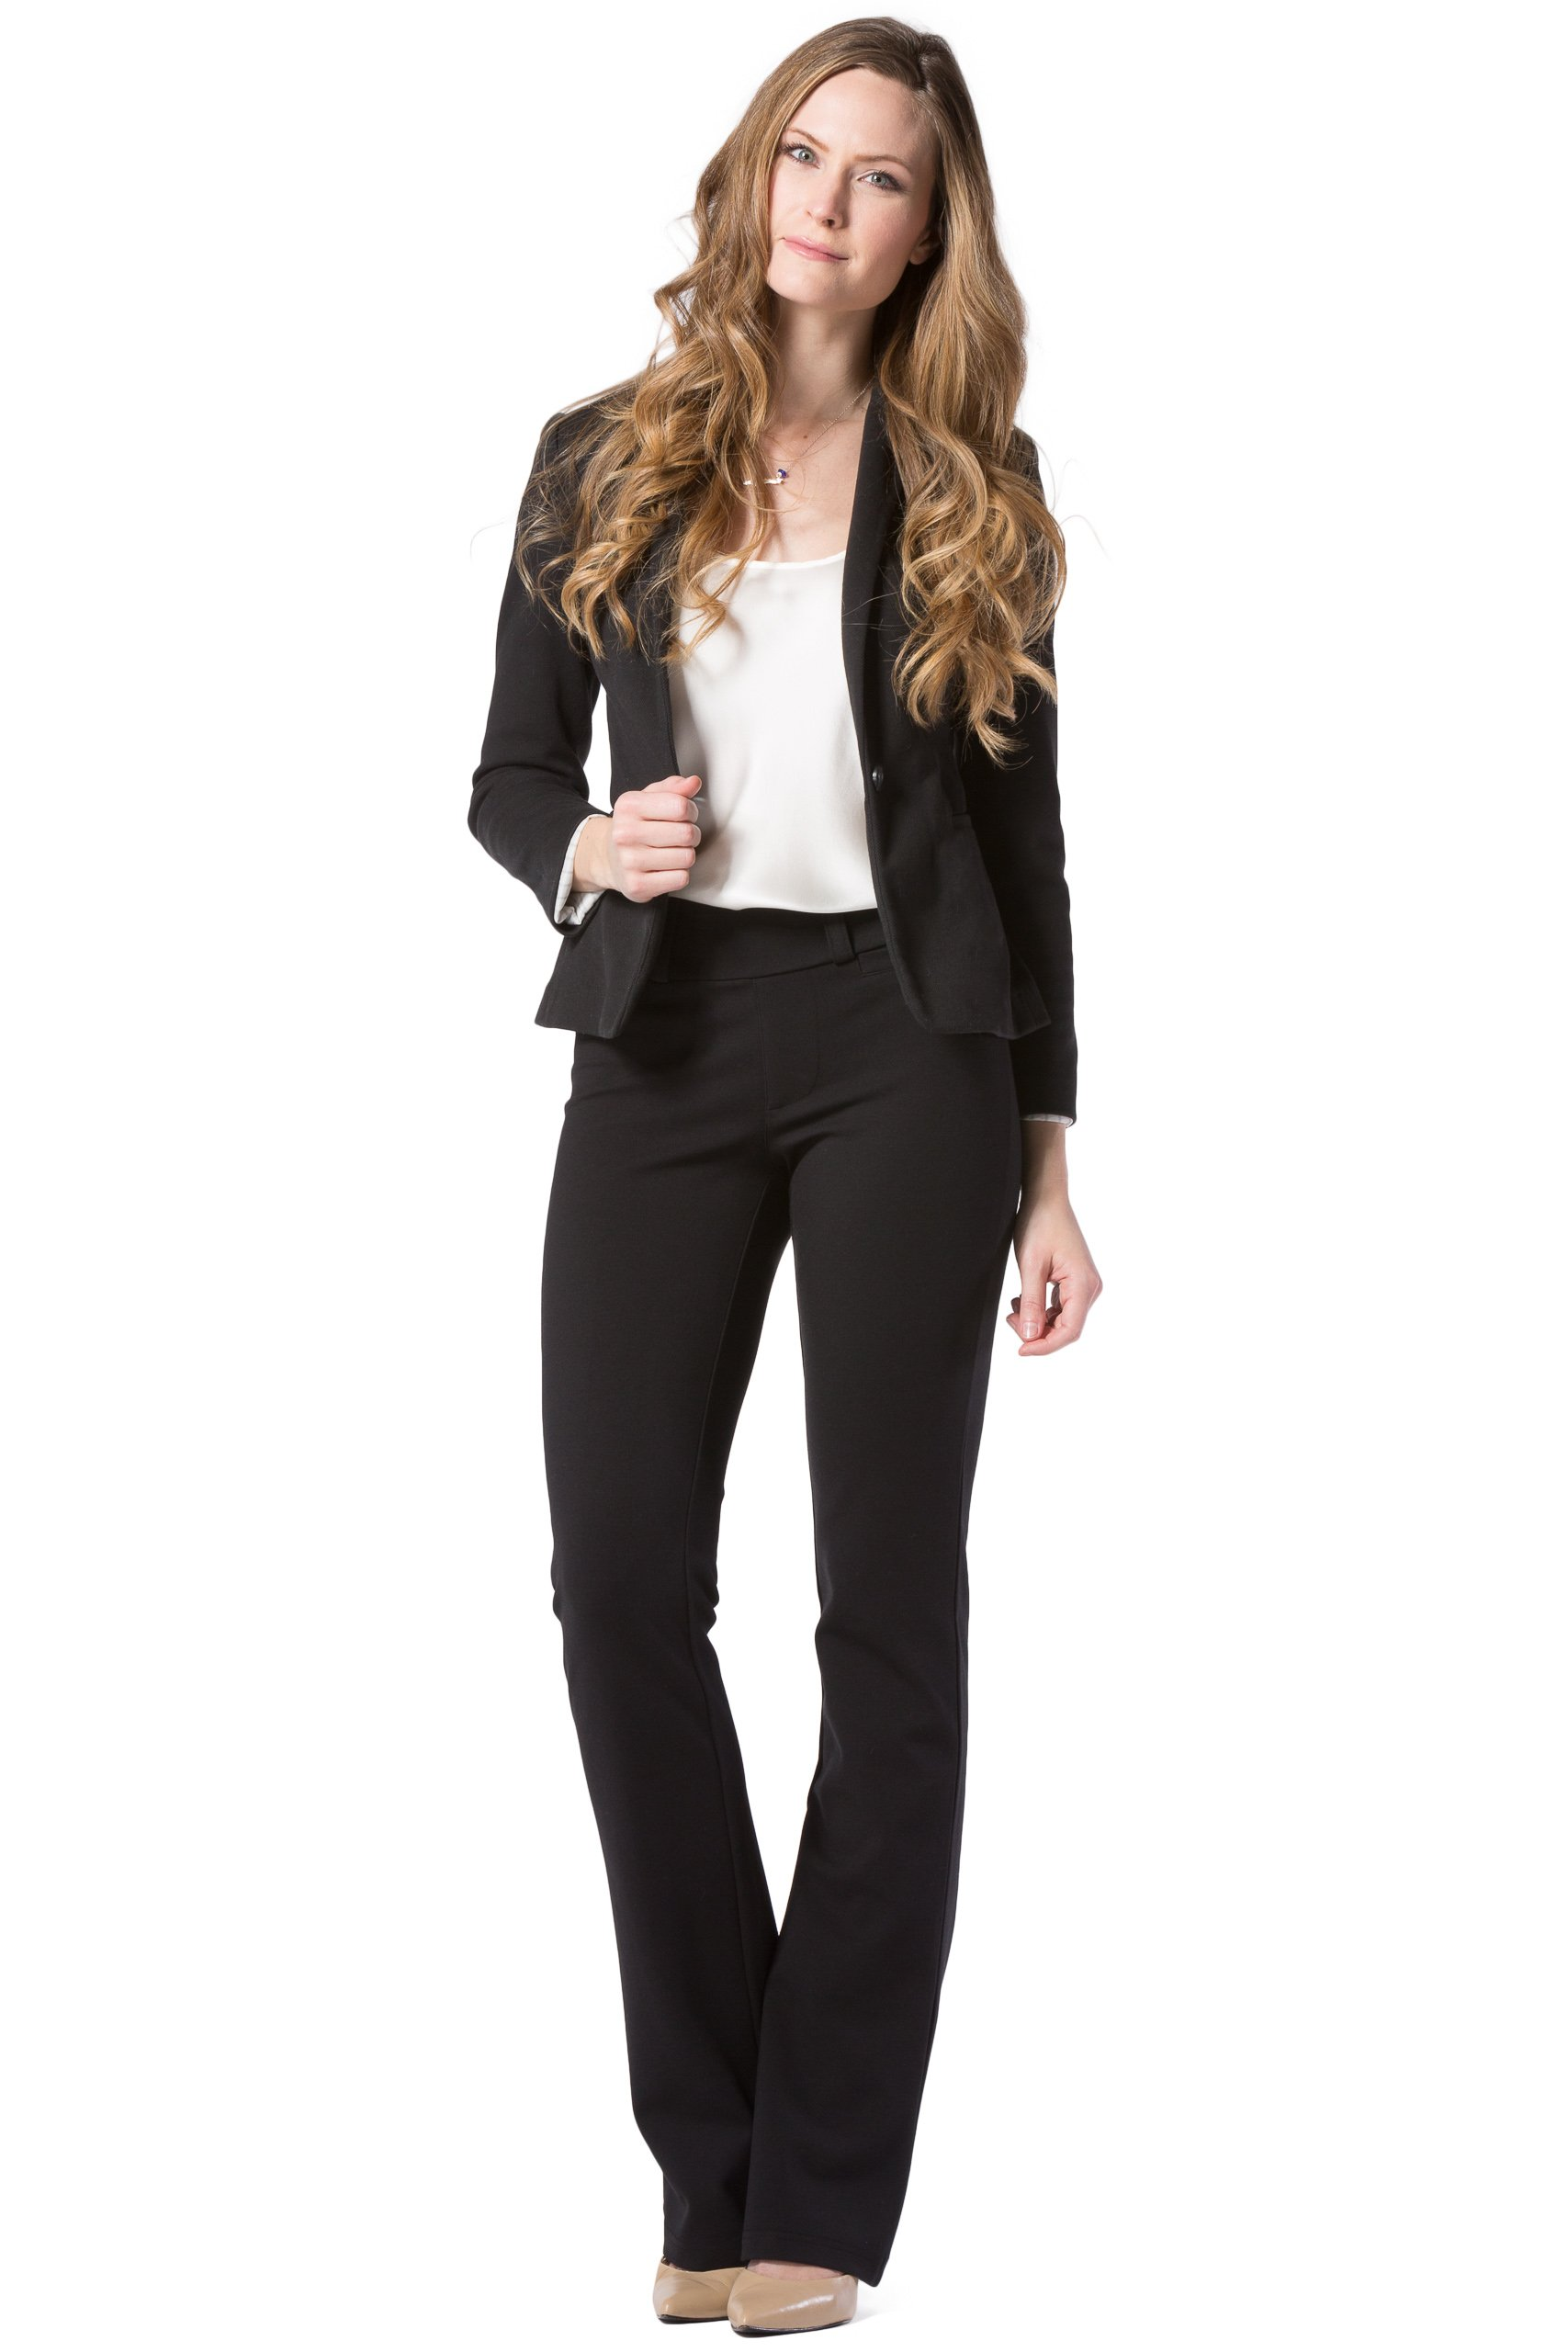 Fishers Finery Women's Ponte Boot Leg Dress Pant; Pull On (Black, M Petite) by Fishers Finery (Image #3)